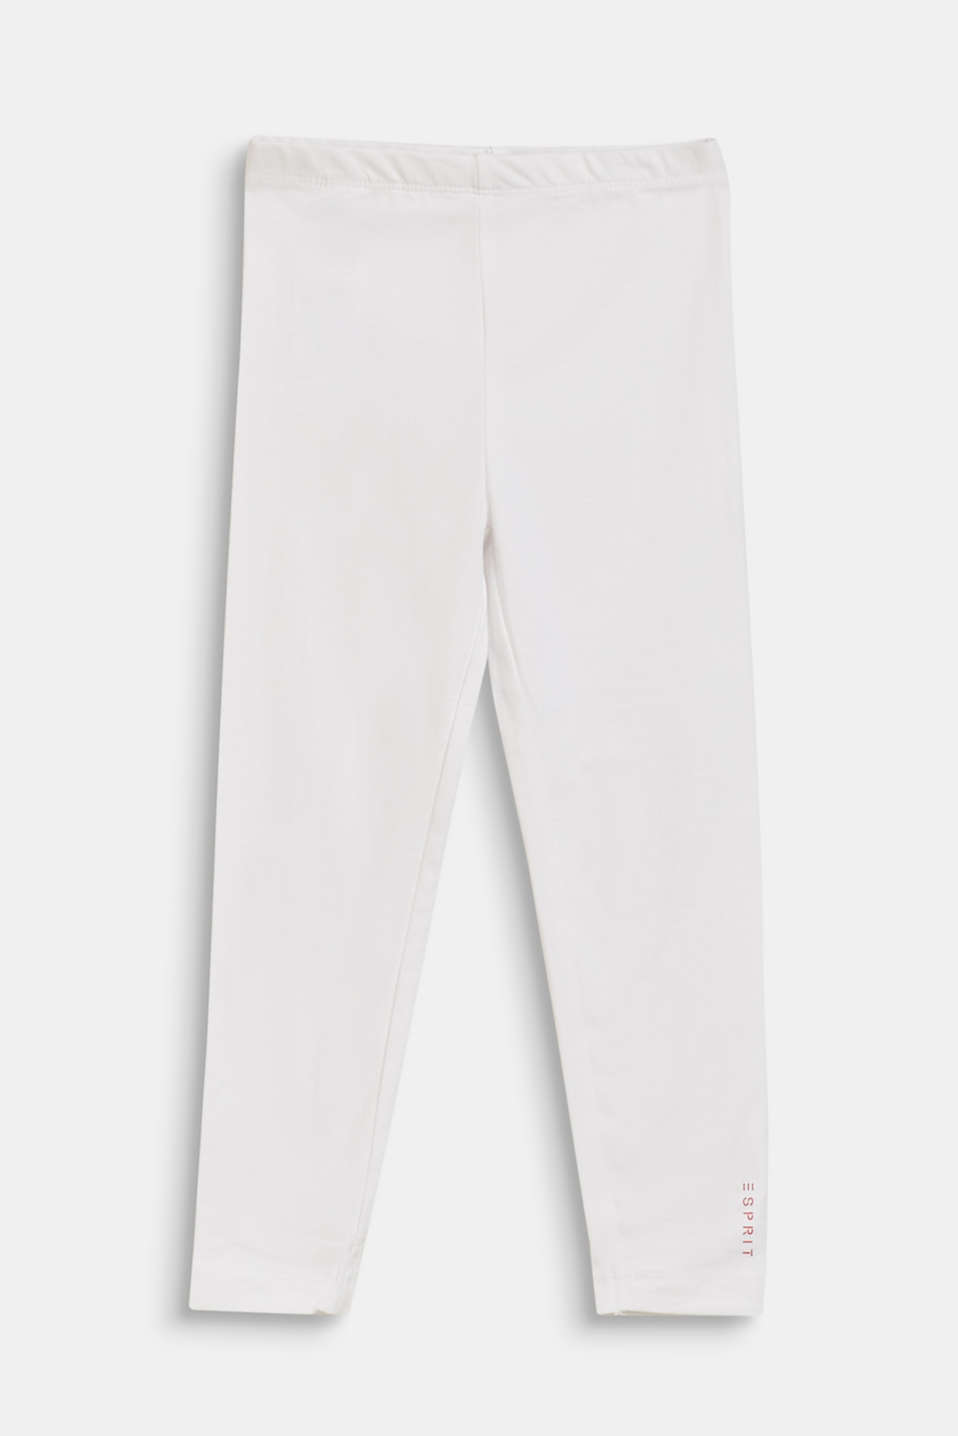 Esprit - Leggings aus Baumwoll-Stretch